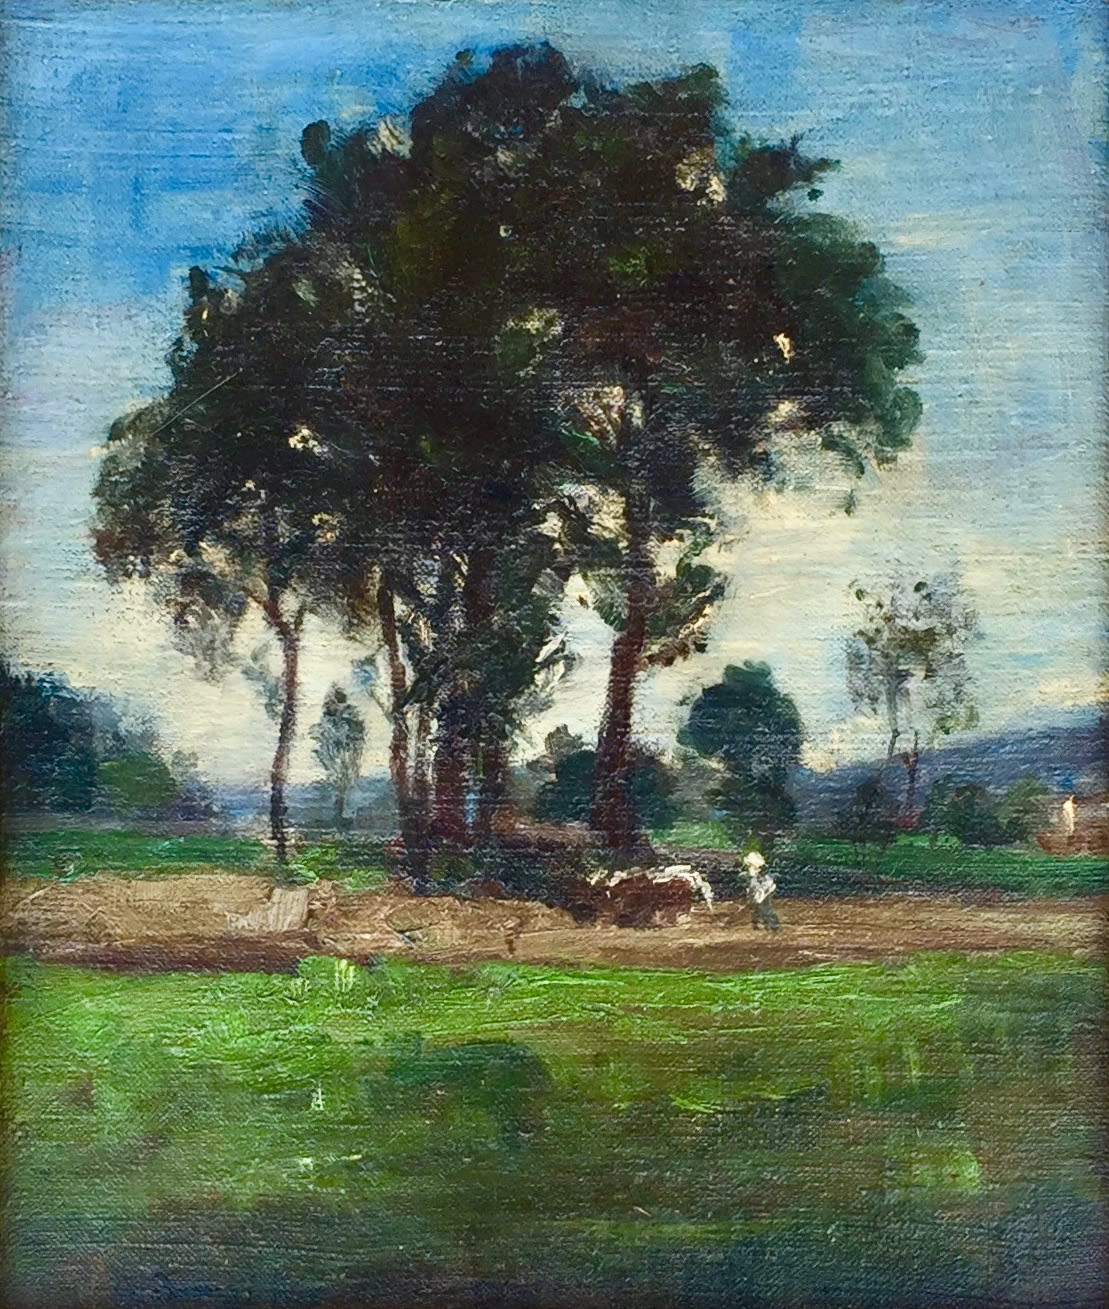 Edward Mitchell Bannister Landscape trees in the middle, 3 cows on right, 1888 Oil on Canvas Framed: 18 x 16 x 2 Unframed: 13 x 11